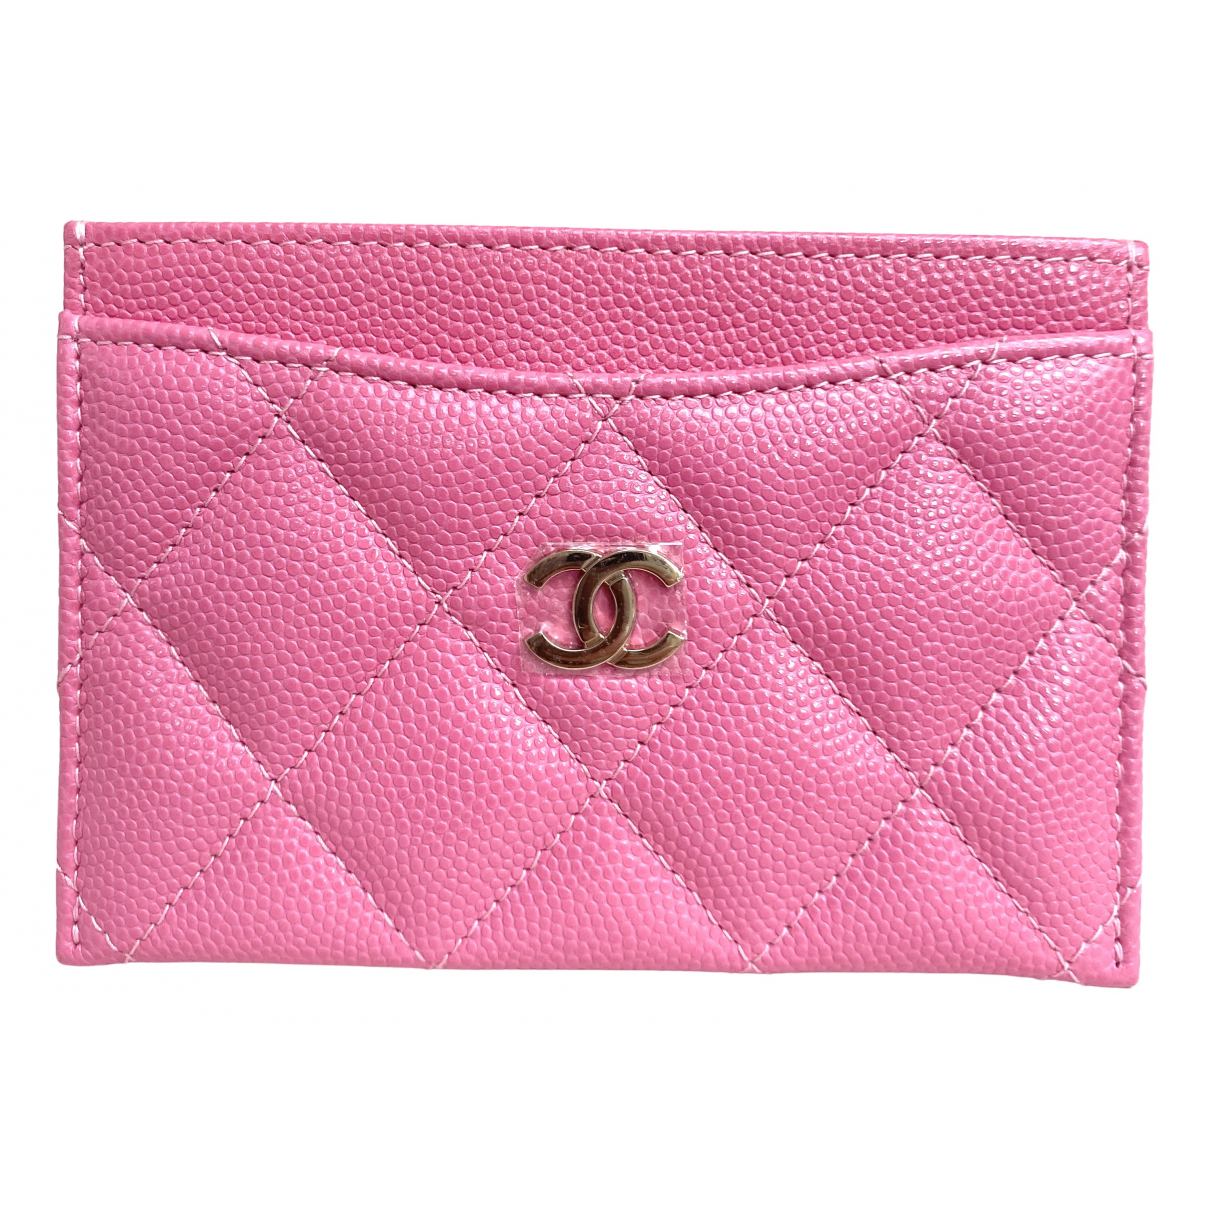 Chanel Timeless/Classique Pink Leather Purses, wallet & cases for Women N